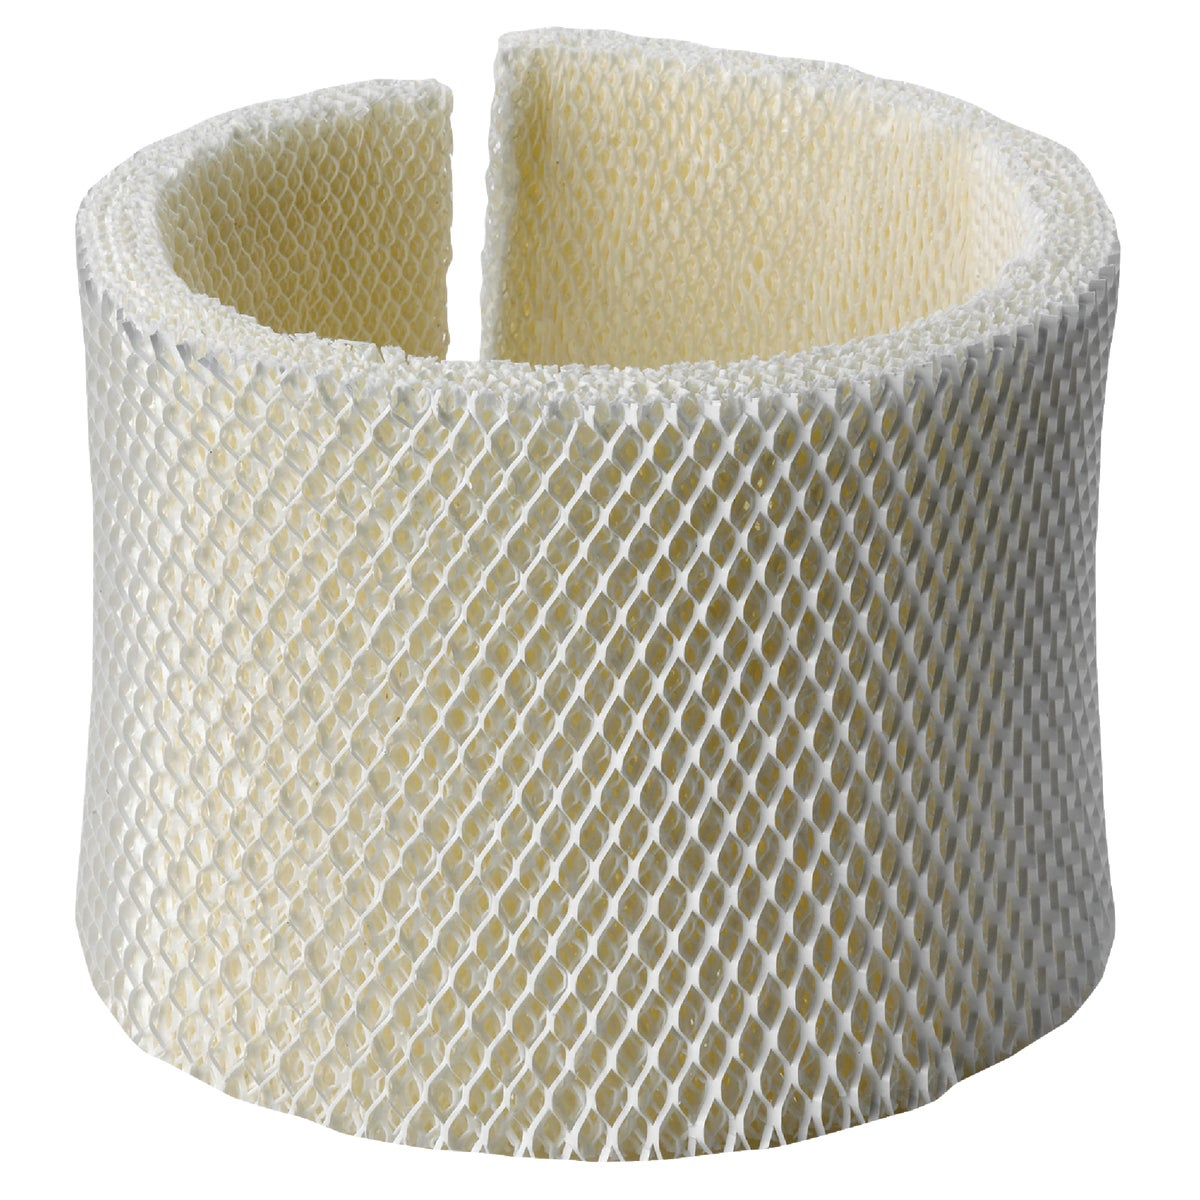 REPLACEMENT HUMID FILTER - MAF2 by Essick Air Products